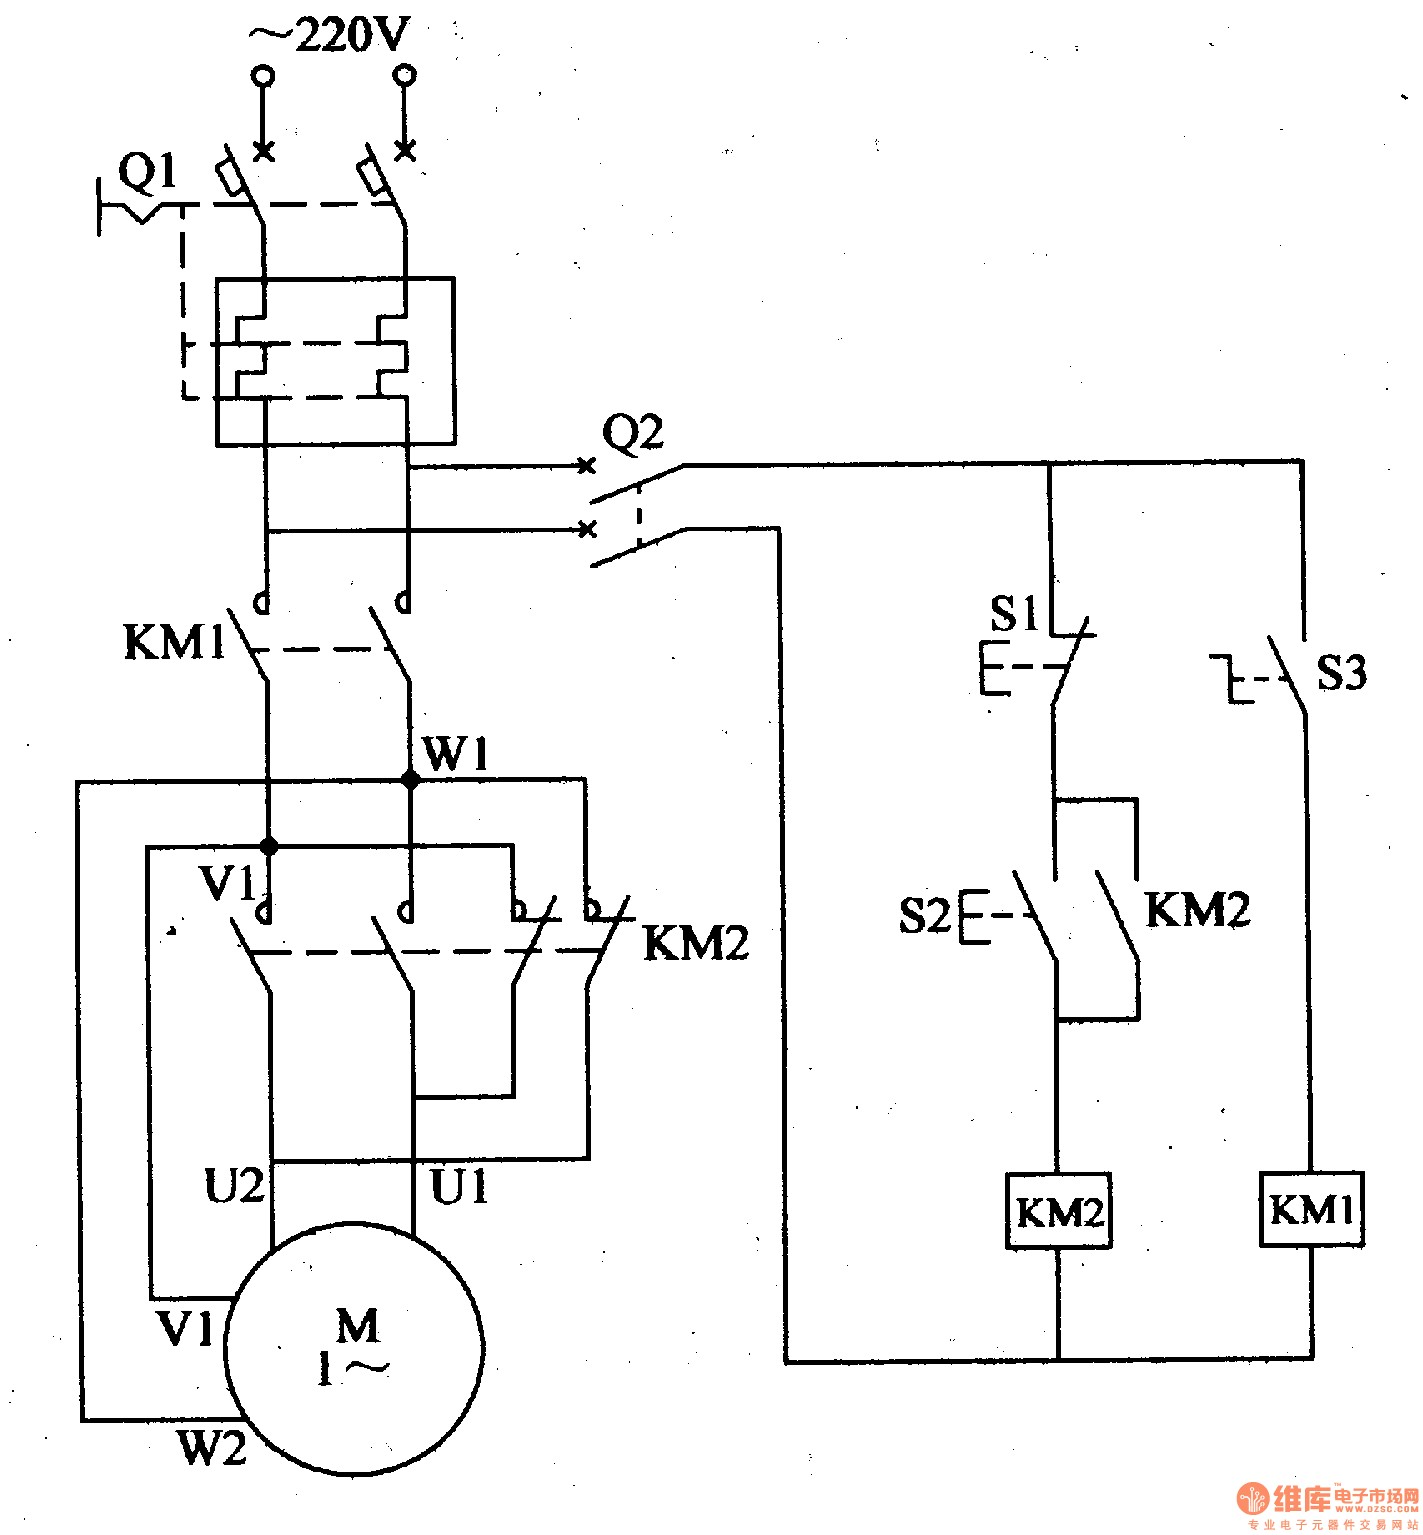 3 Phase To Single Phase Motor Wiring Diagram wiring data